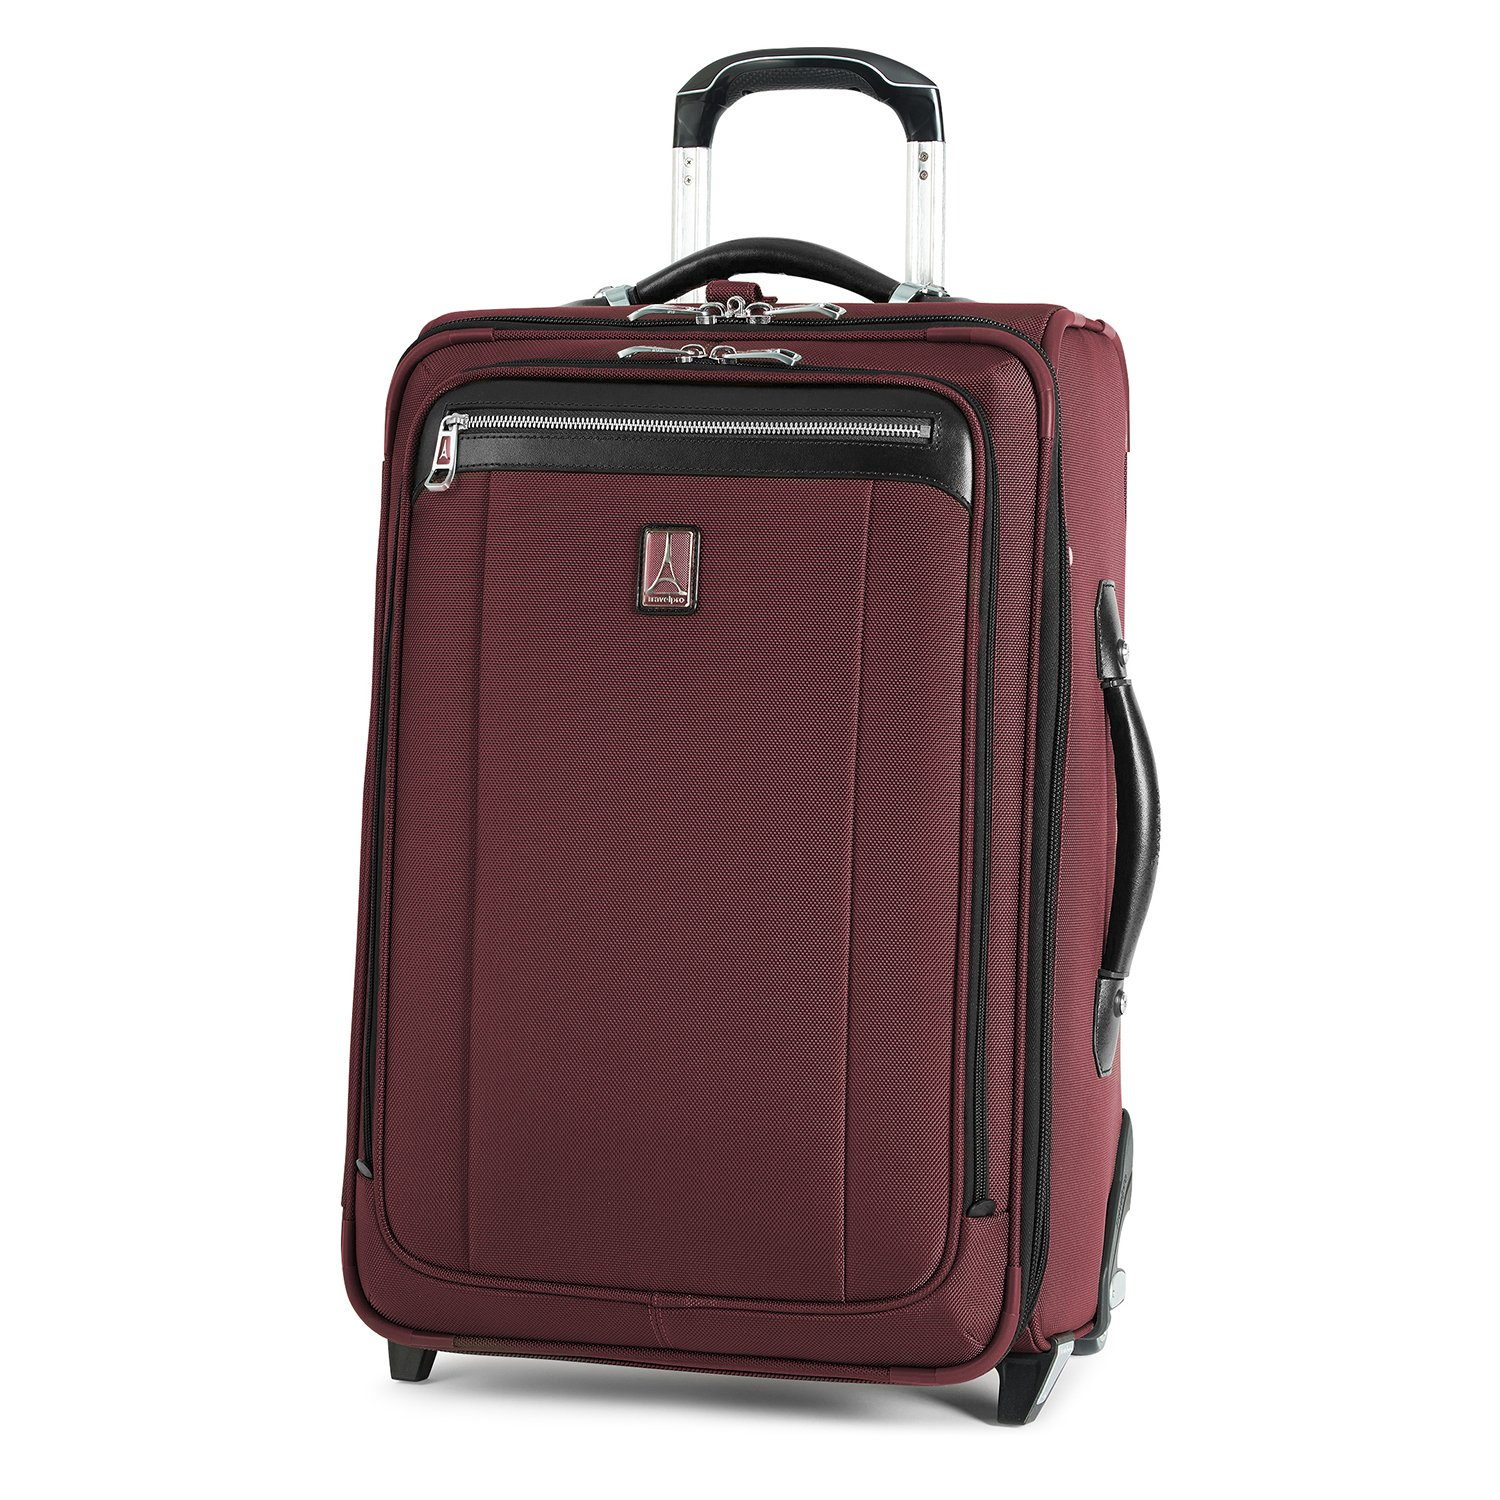 Travelpro Platinum Magna 2 Carry-On Expandable Rollaboard Suiter Suitcase, 22-in., Marsala Red by Travelpro